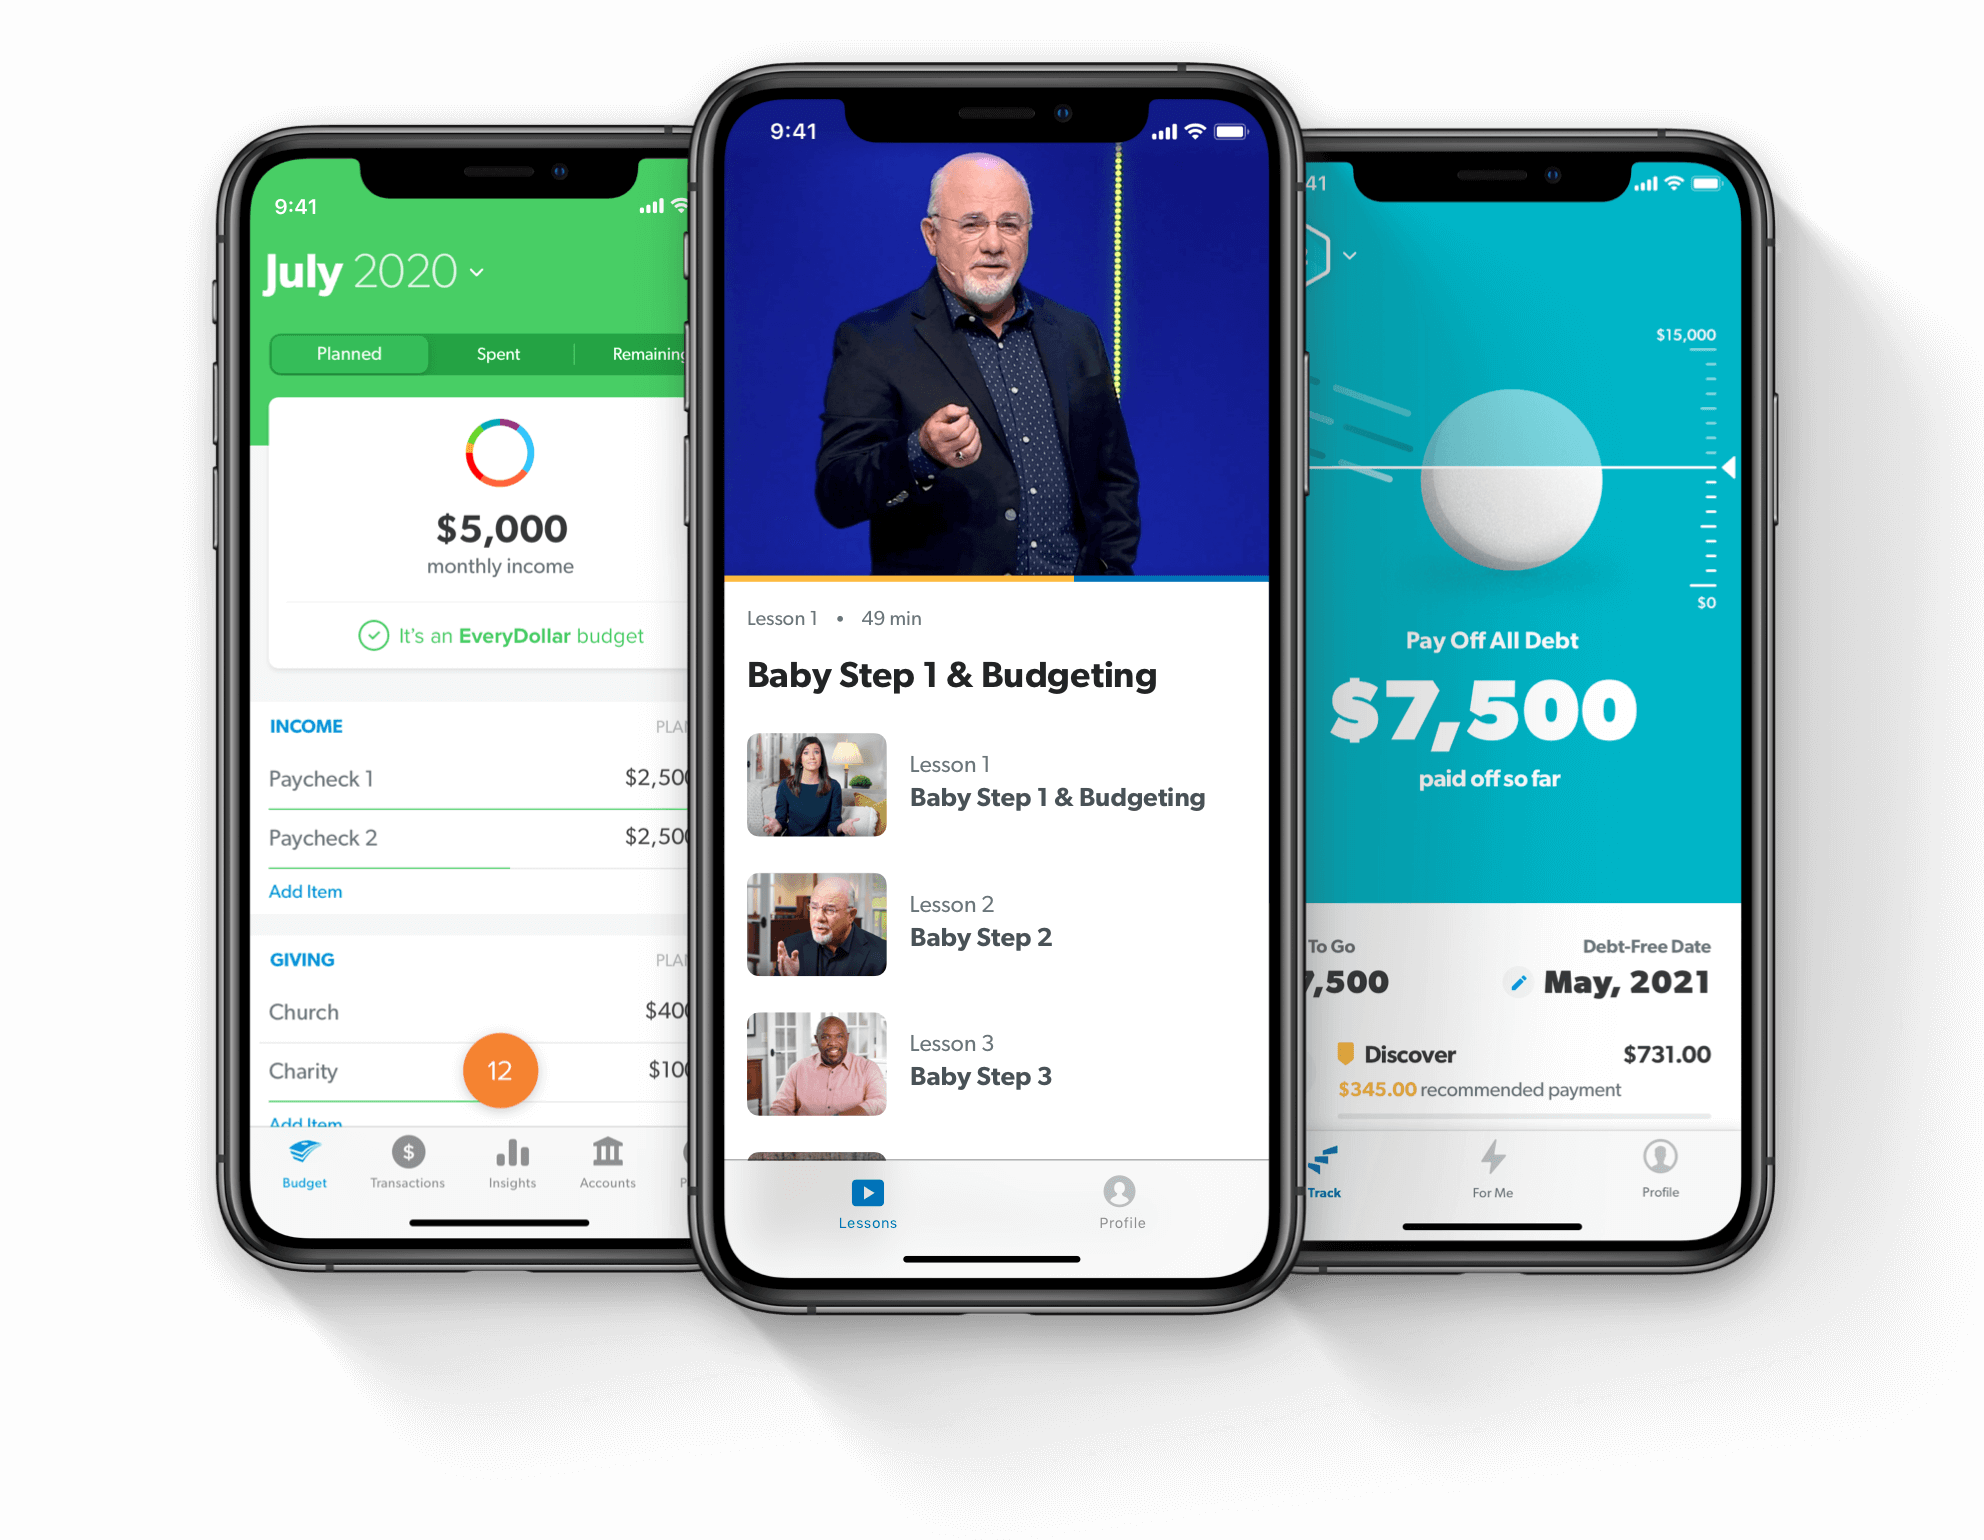 Financial Peace, EveryDollar, and BabySteps app shown on various devices